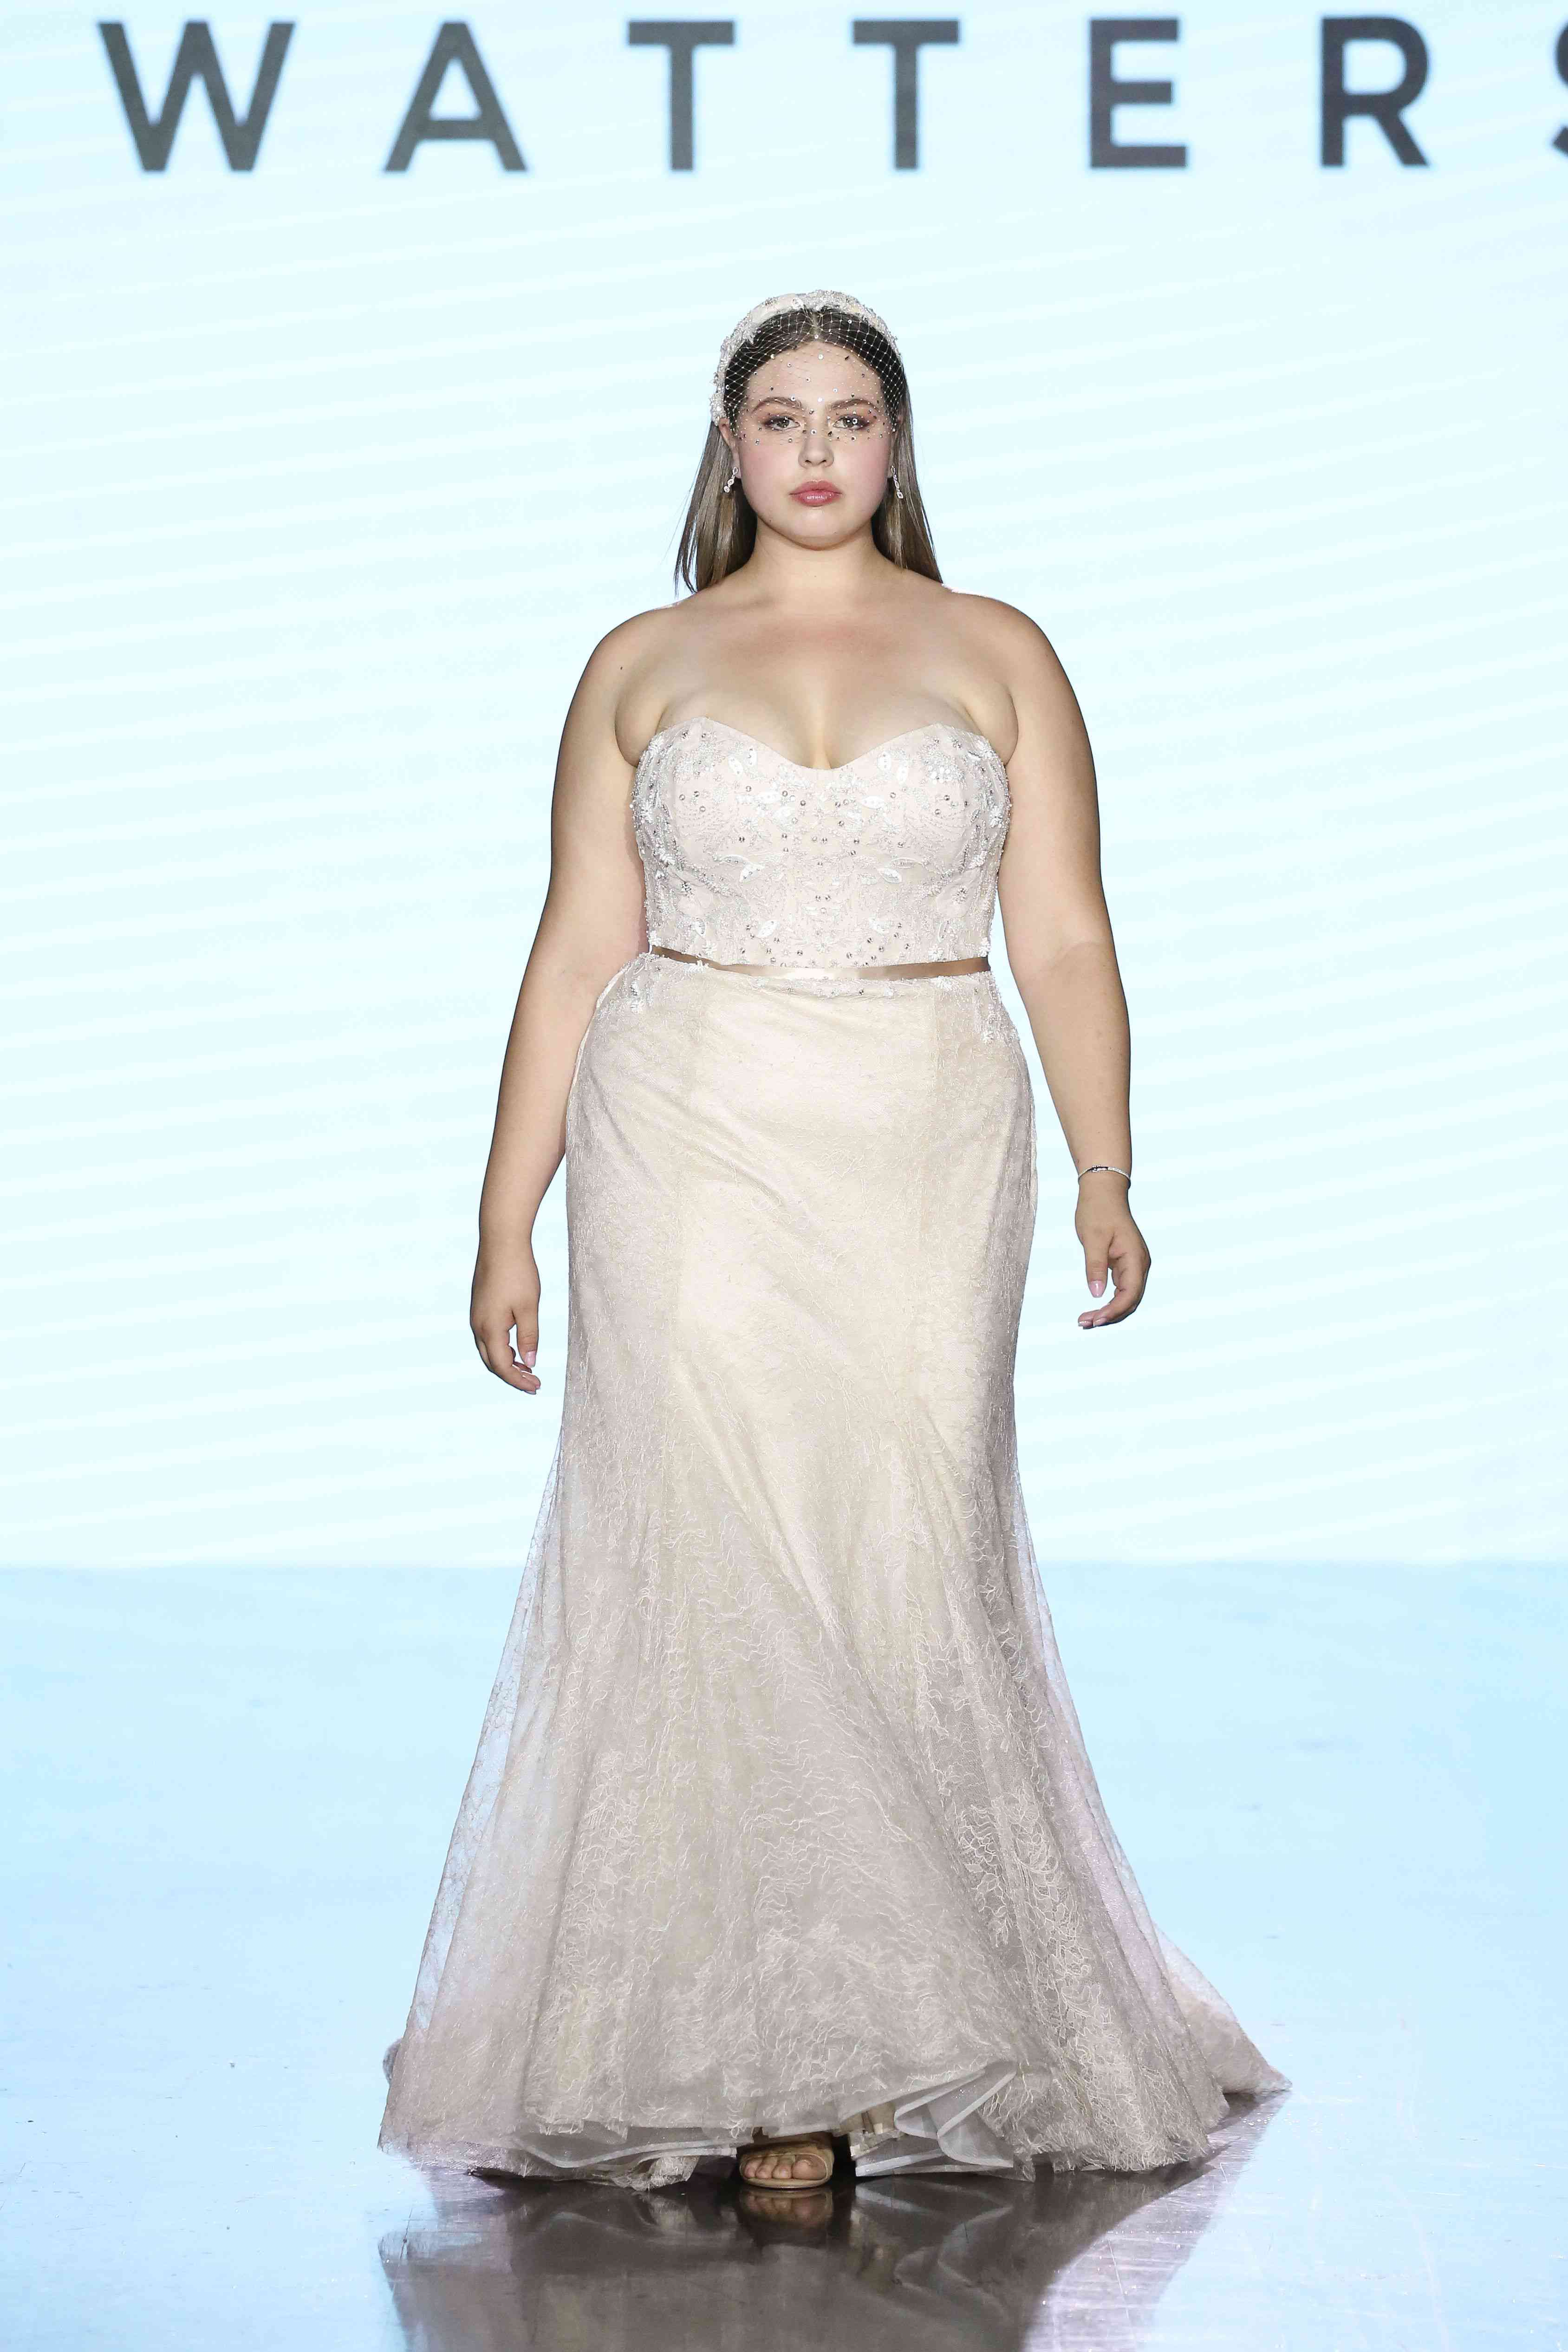 Model on runway in strapless lace trumpet gown